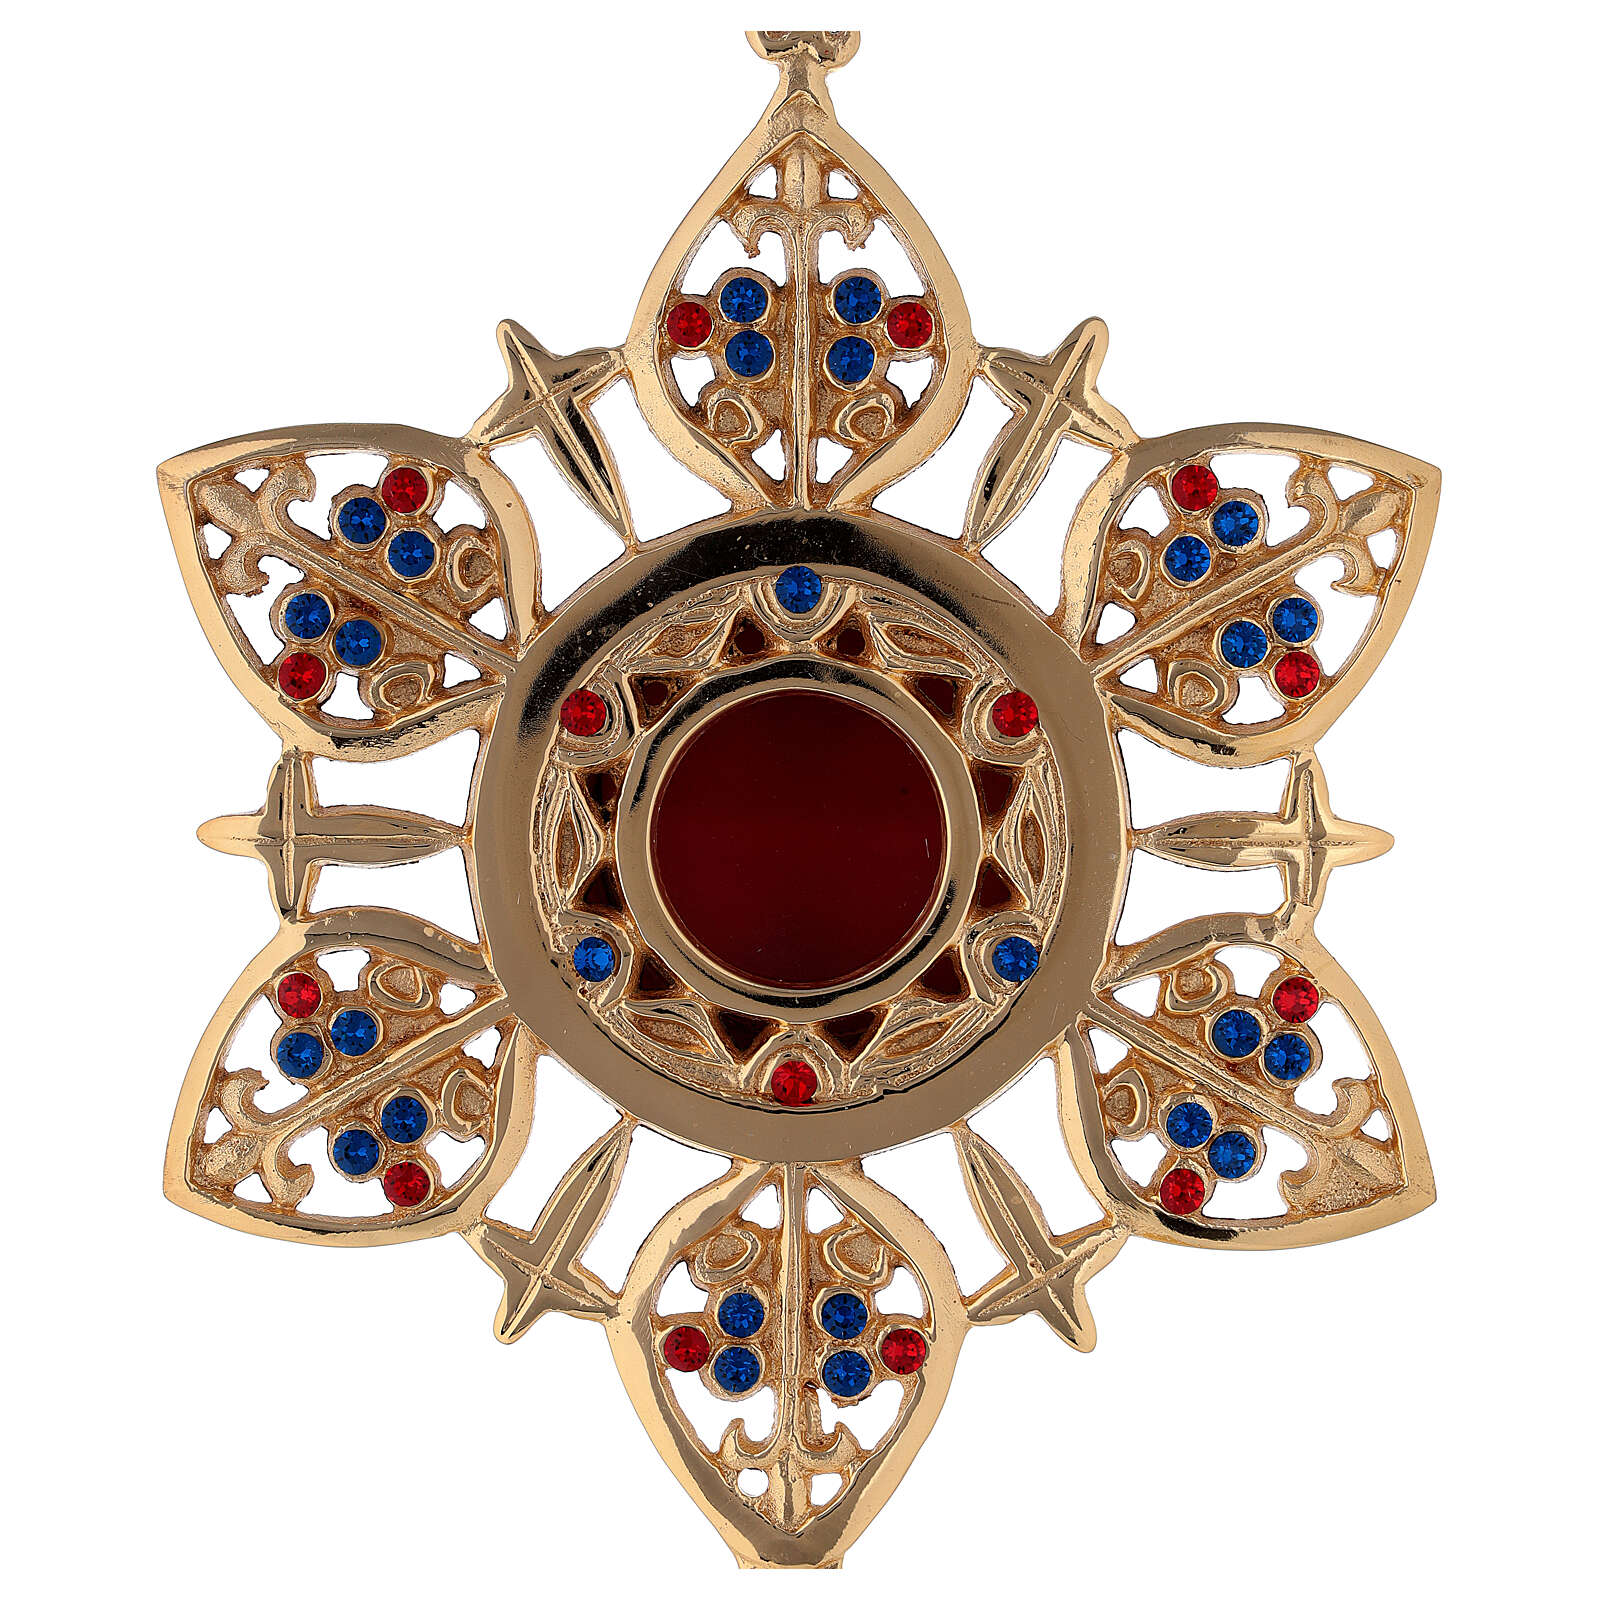 Flower shape reliquary in gold plated brass with colored stones 4